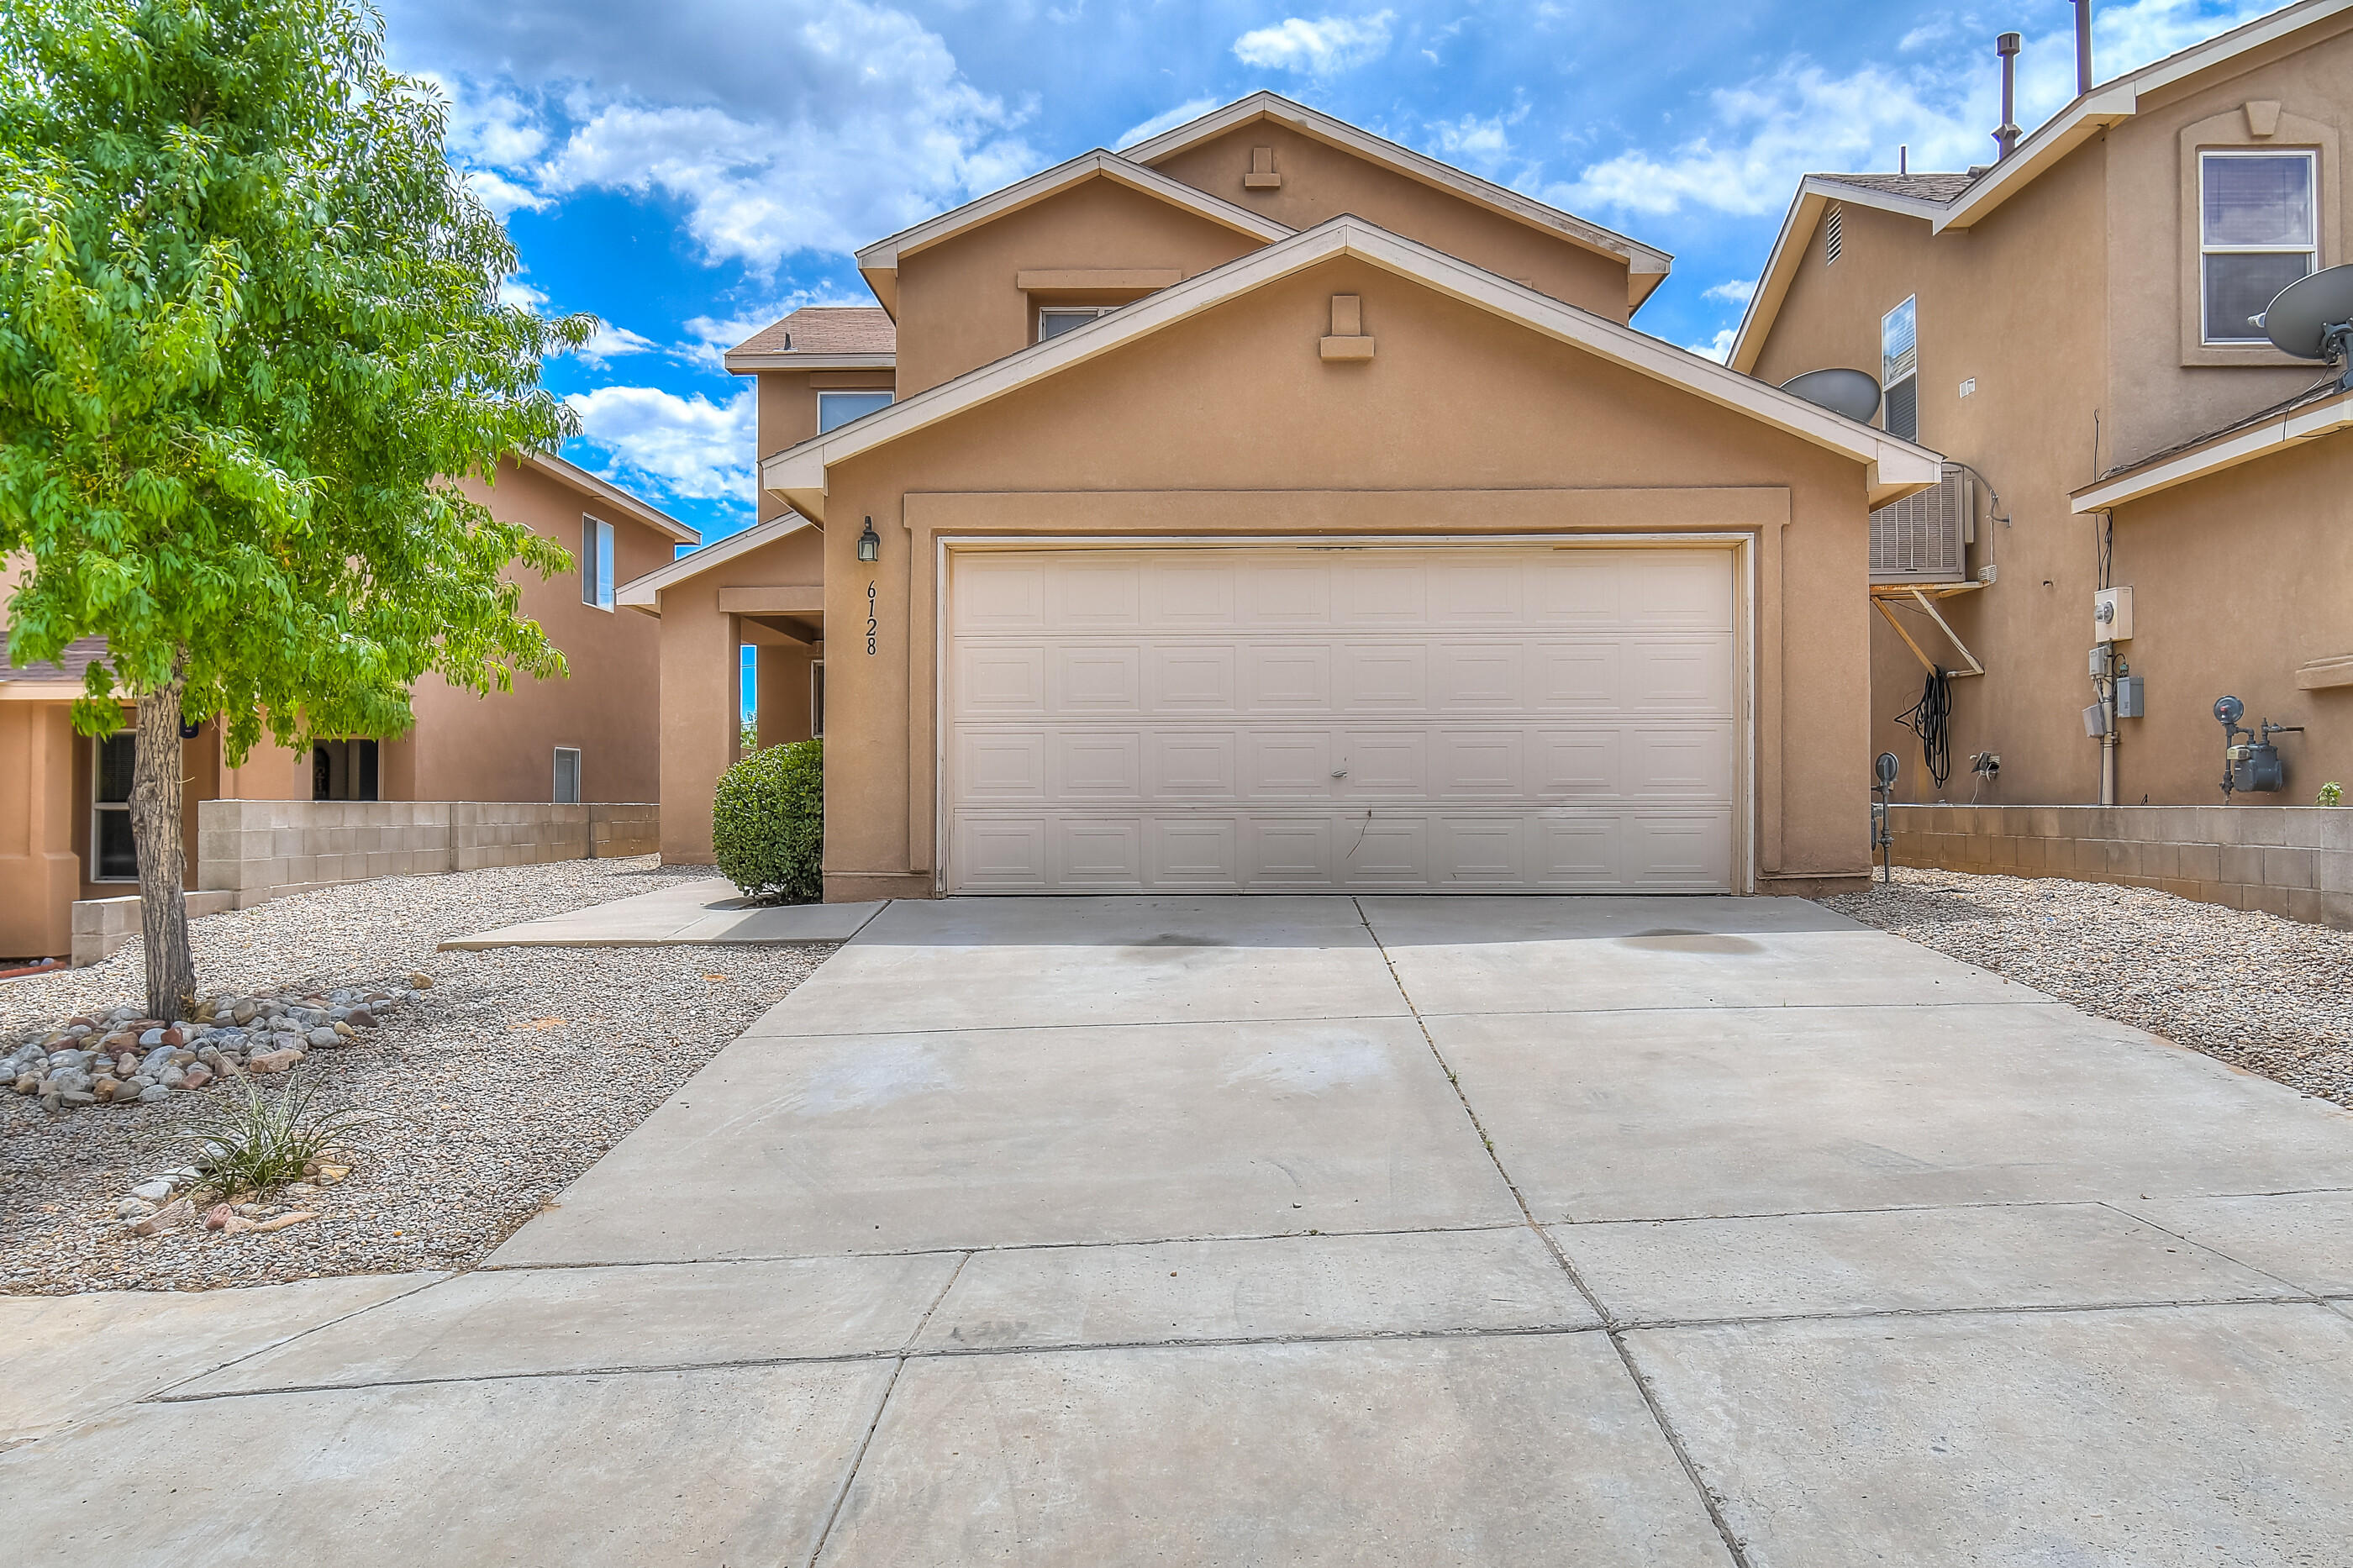 What a wonderful opportunity to own a KB Built home in Park South. This two story beauty is turn key and ready for a new owner. Brand new carpet throughout the house. New tile in all the bathrooms. A wonderful balcony off the master suite with stunning views. The location is great being close to a park, fine dining, CNM West campus, and Rust Medical Center. The Home Boasts an Open Floor Plan that is great for entertaining. The Brand New Evaporative A/C Unit will be sure to keep you cool during the hot summer months. Upstairs are two large spare bedrooms, a loft, and a full bathroom. Also upstairs is the master suite with a large walk-in closet, and full bathroom. This beauty has a lot to offer and will be sure to sell quickly.